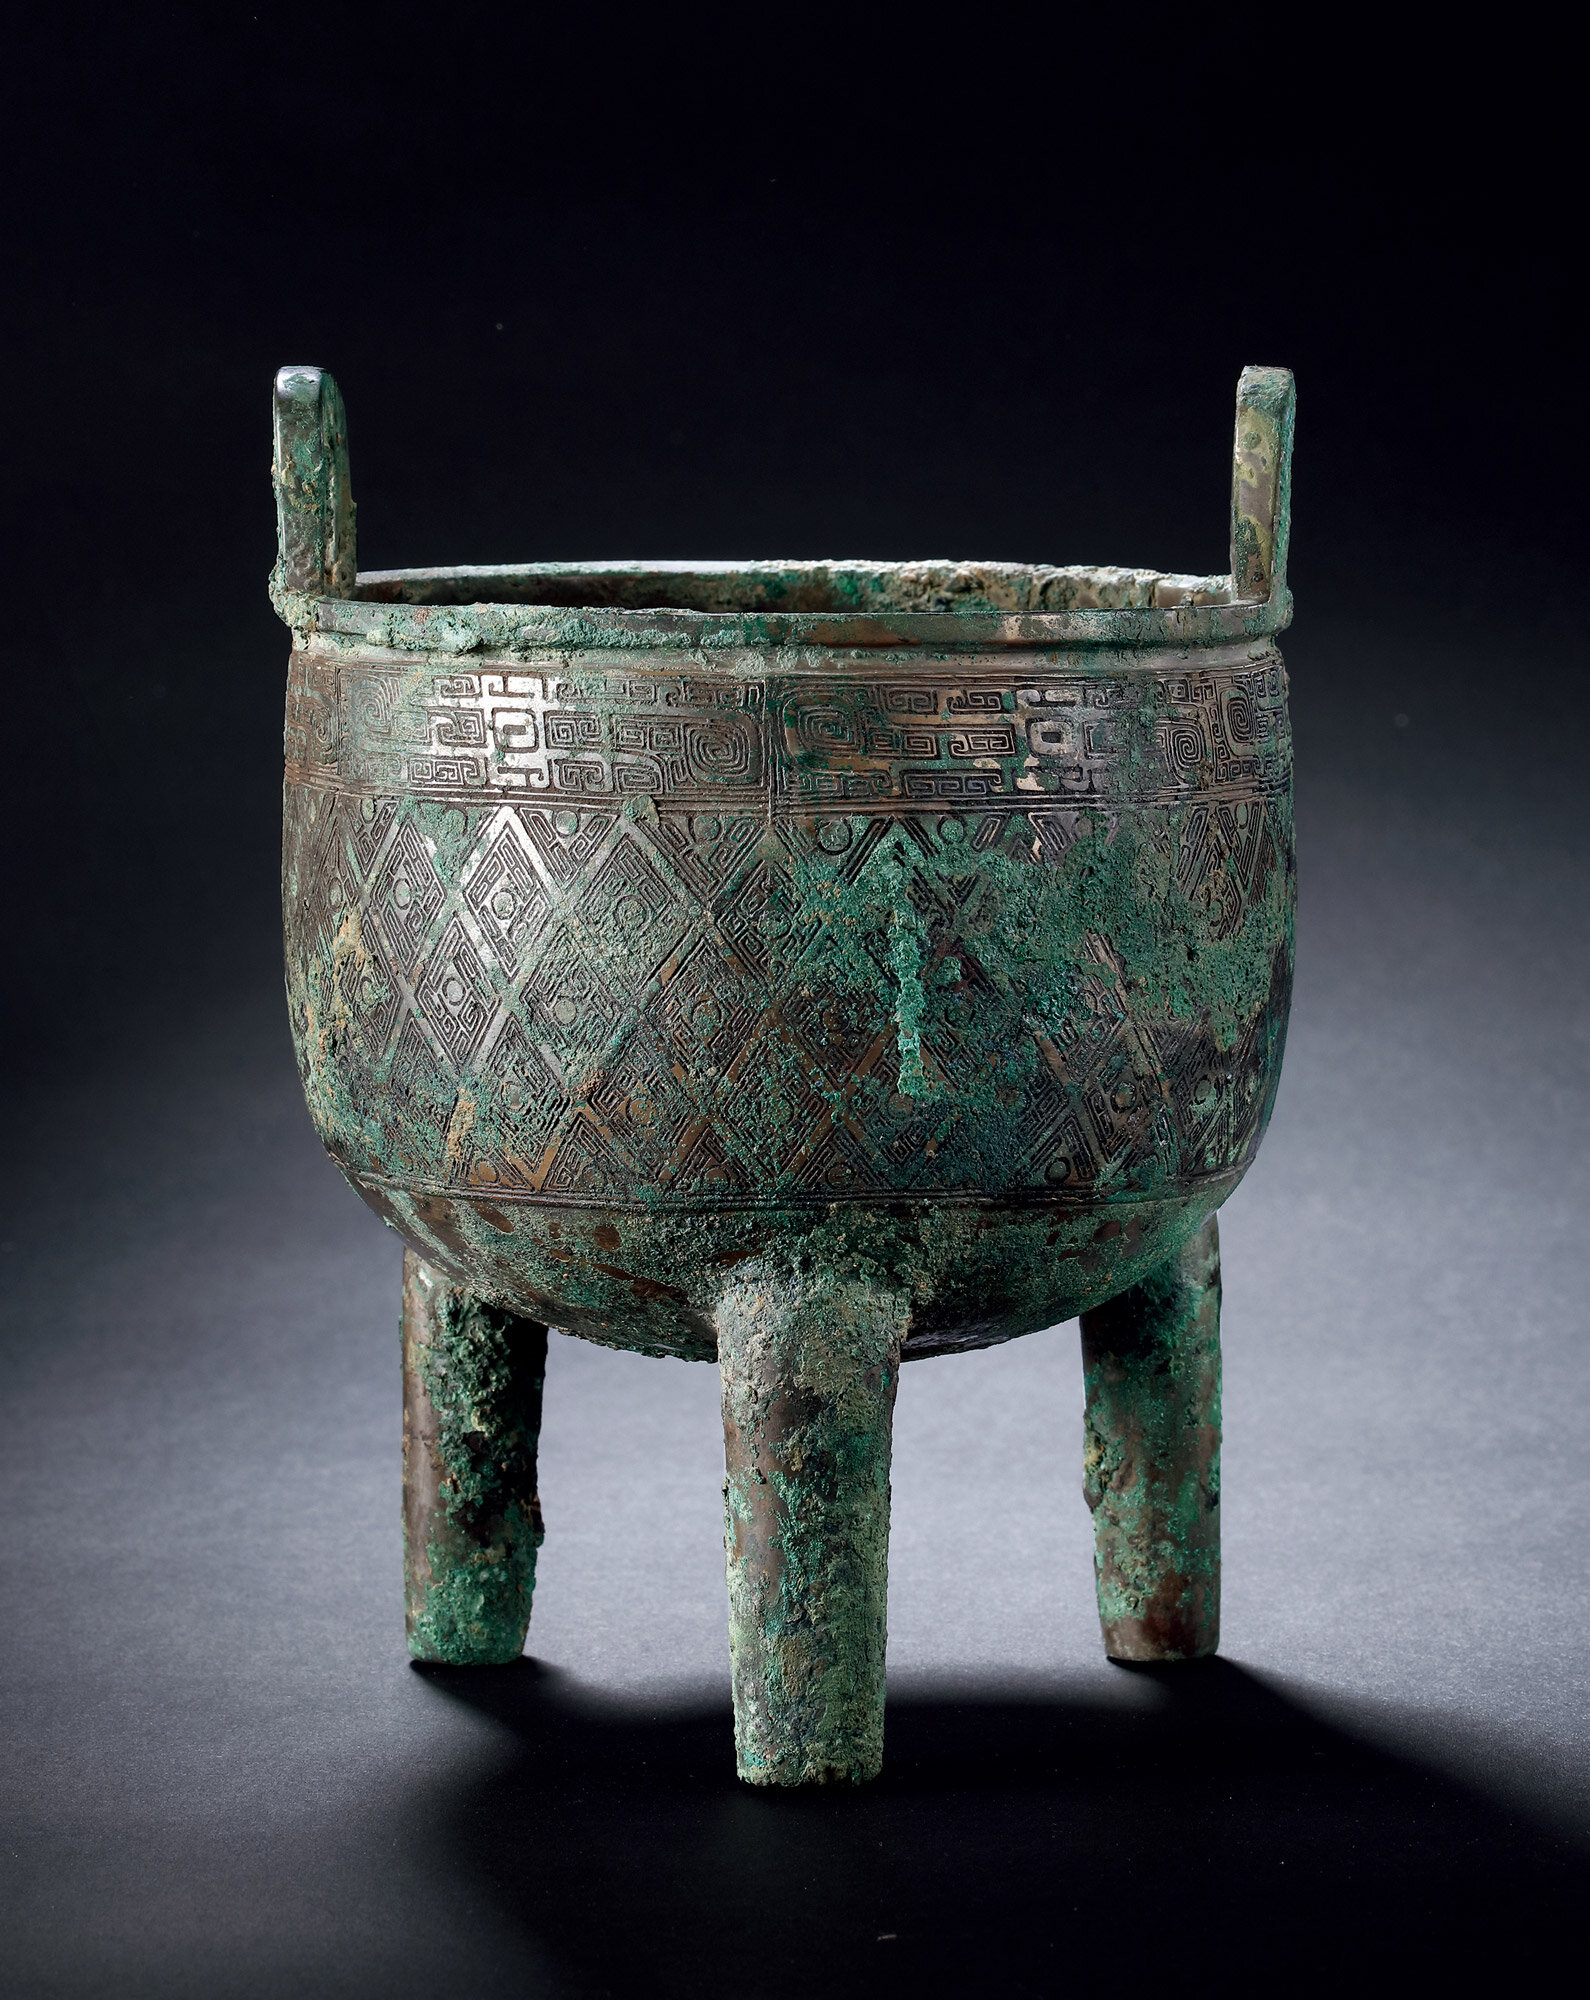 A Bronze Tripod Vessel, Ding, Late Shang Dynasty, 1600-1046 B